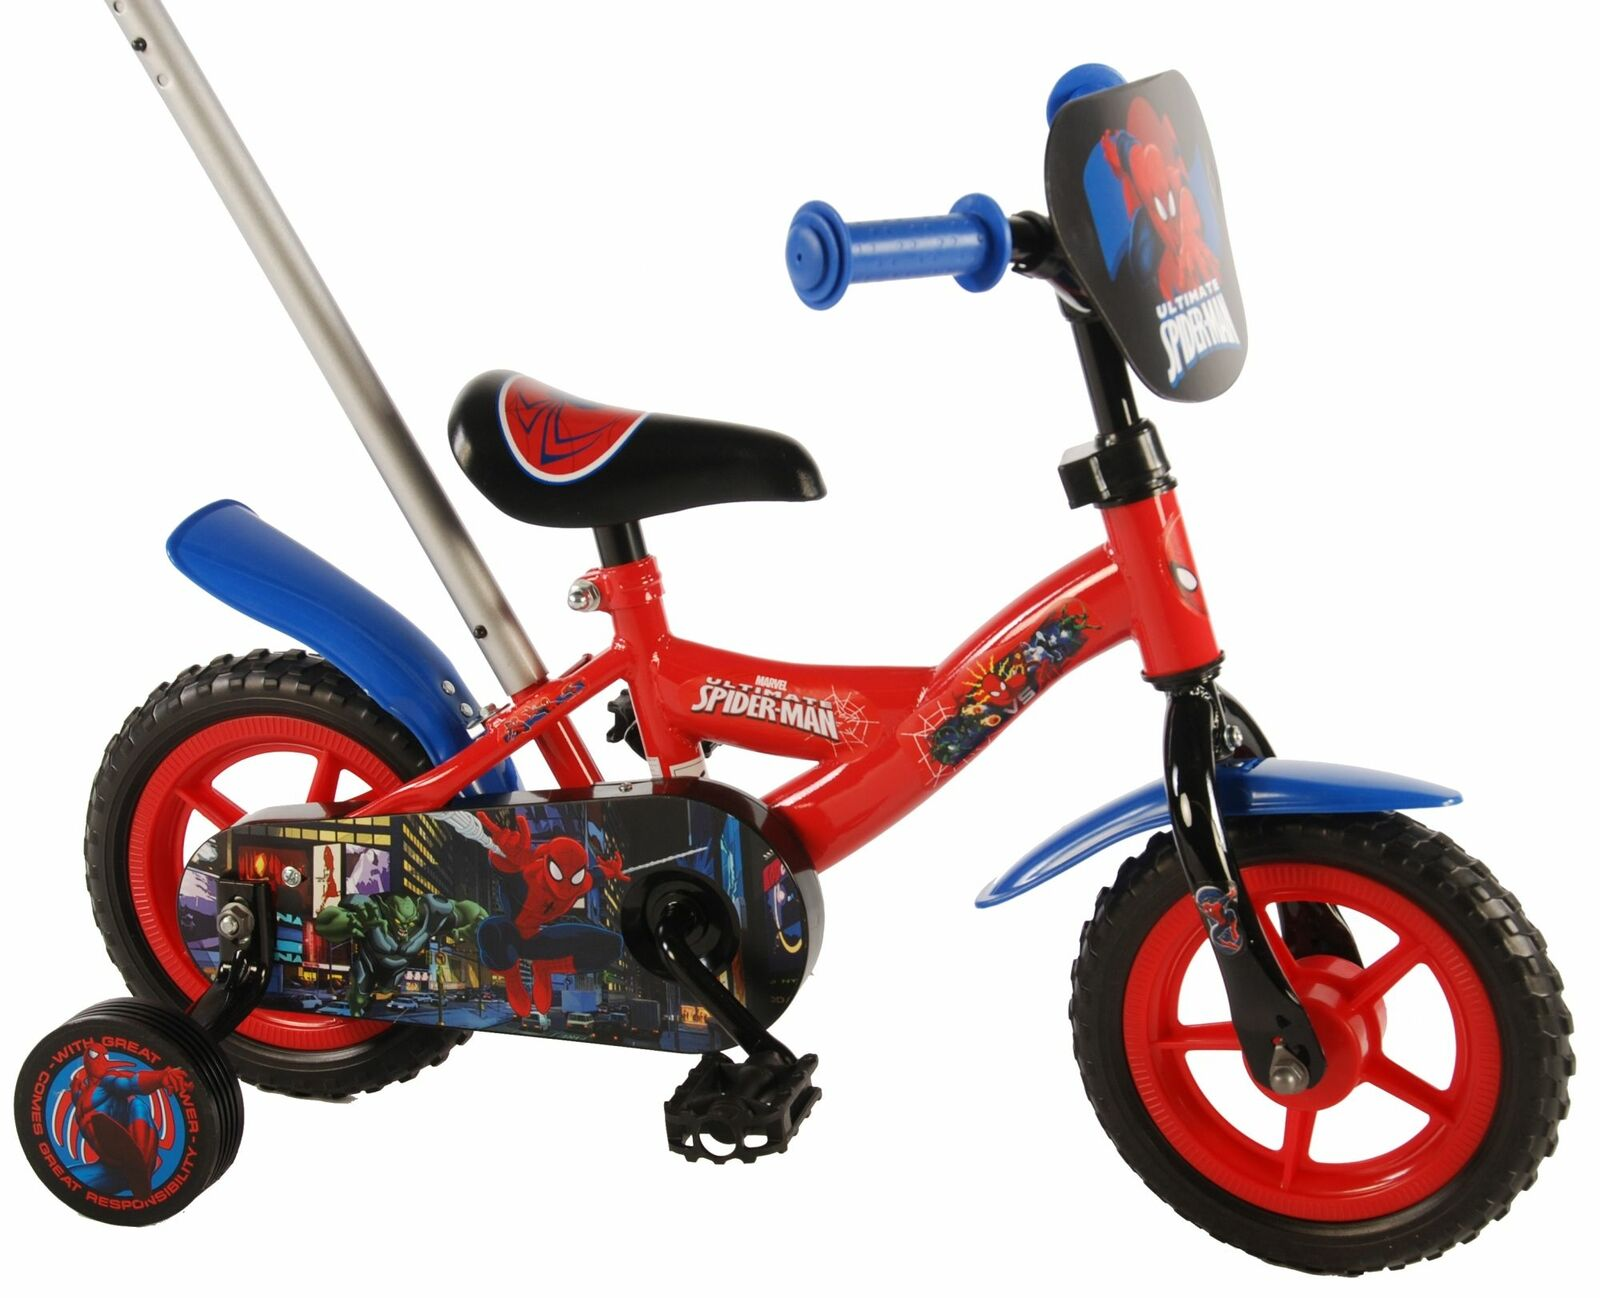 kinderfahrrad spider man 10 zoll fahrrad mit schubstange st tzr der spiderman eur 89 80. Black Bedroom Furniture Sets. Home Design Ideas